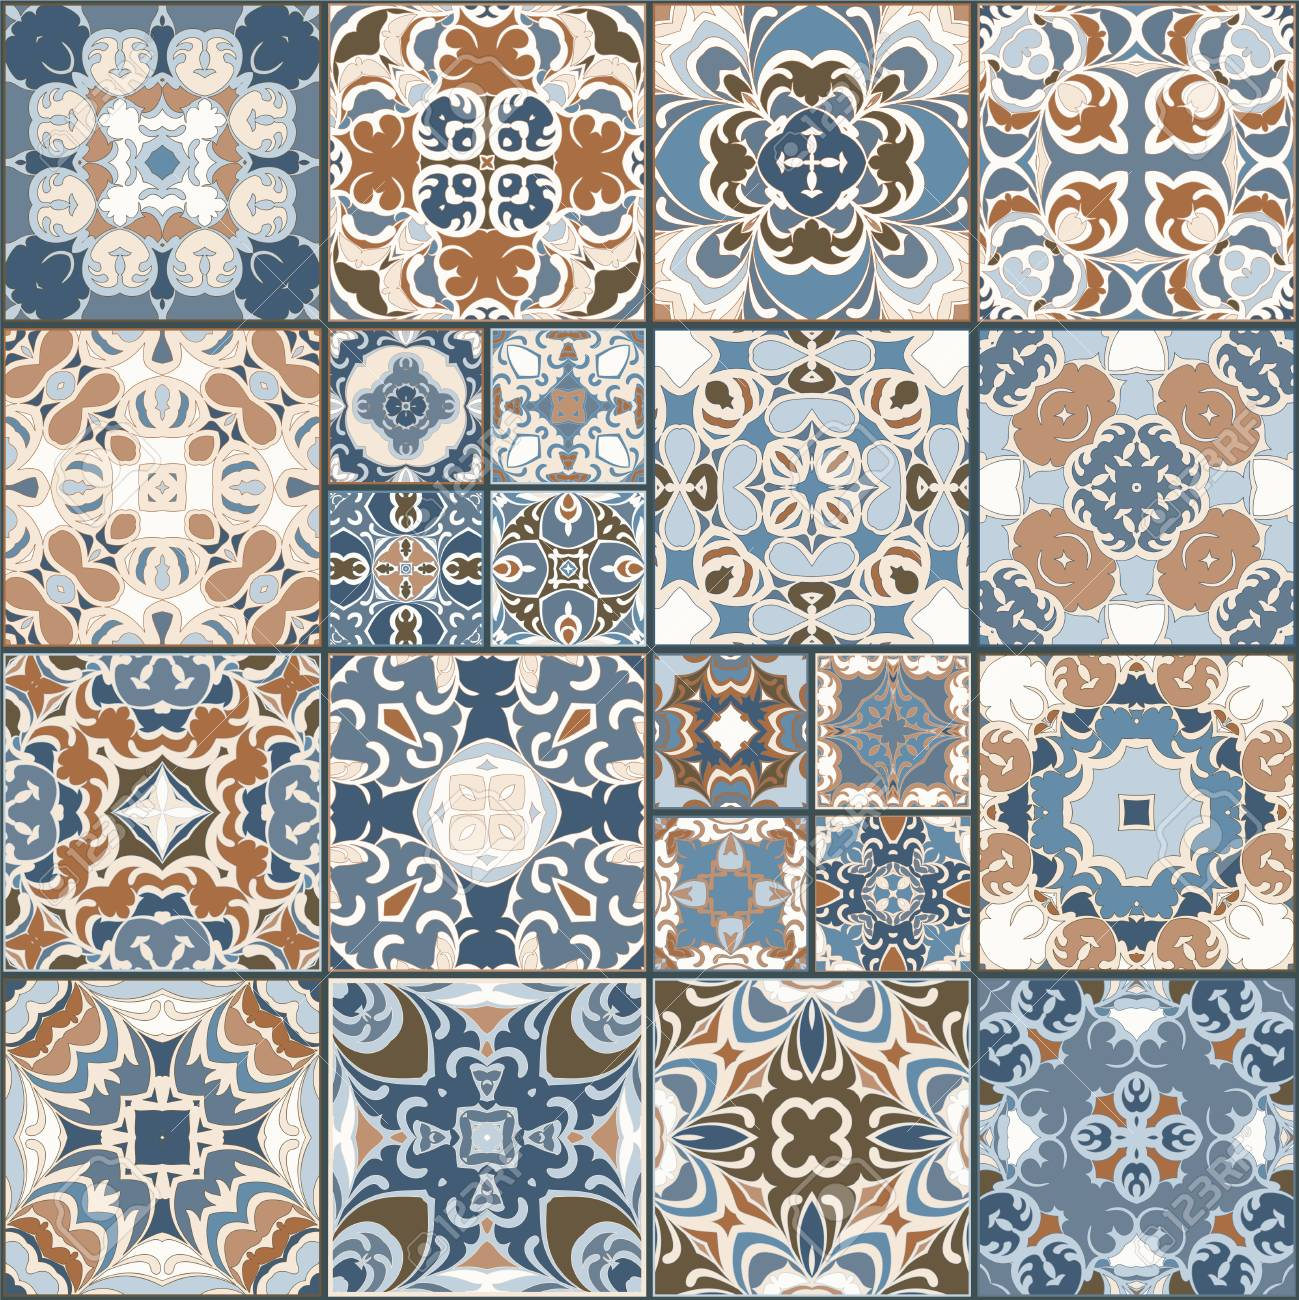 A Collection Of Ceramic Tiles In Retro Colors. A Set Of Square ...